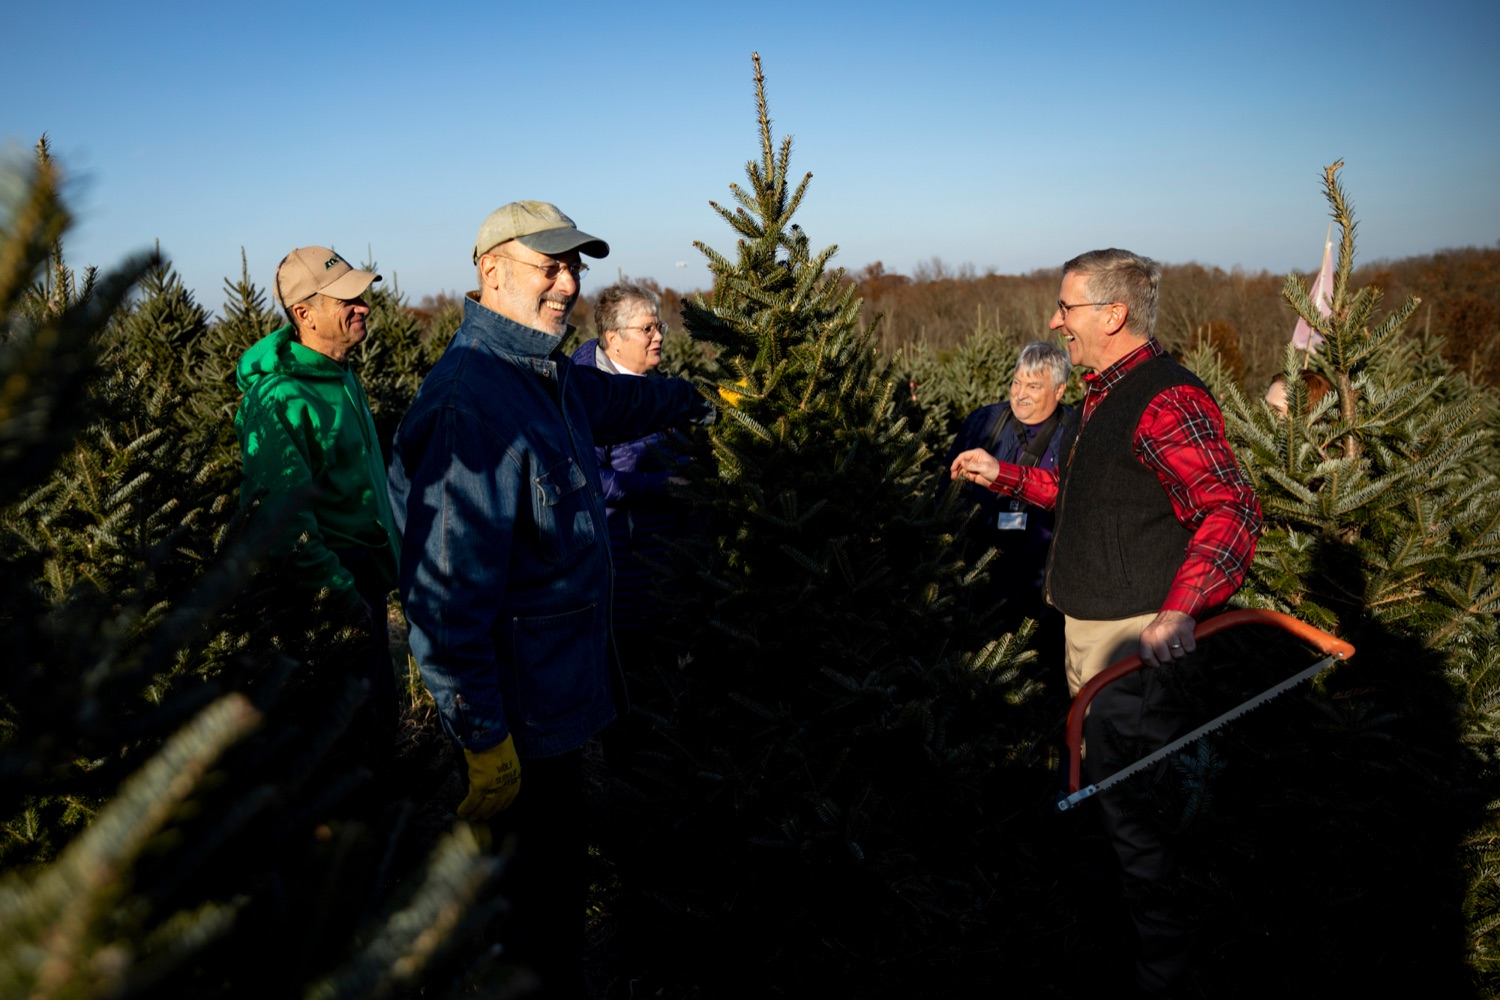 "<a href=""http://filesource.abacast.com/commonwealthofpa/photo/17615_GOV_AGRIC_Christmas_Trees_NK_001.JPG"" target=""_blank"">⇣ Download Photo<br></a>Pennsylvania Governor Tom Wolf, front left, and Pennsylvania Agriculture Secretary Russell Redding, front right, smile before cutting down a Christmas tree on Monday, November 25, 2019."